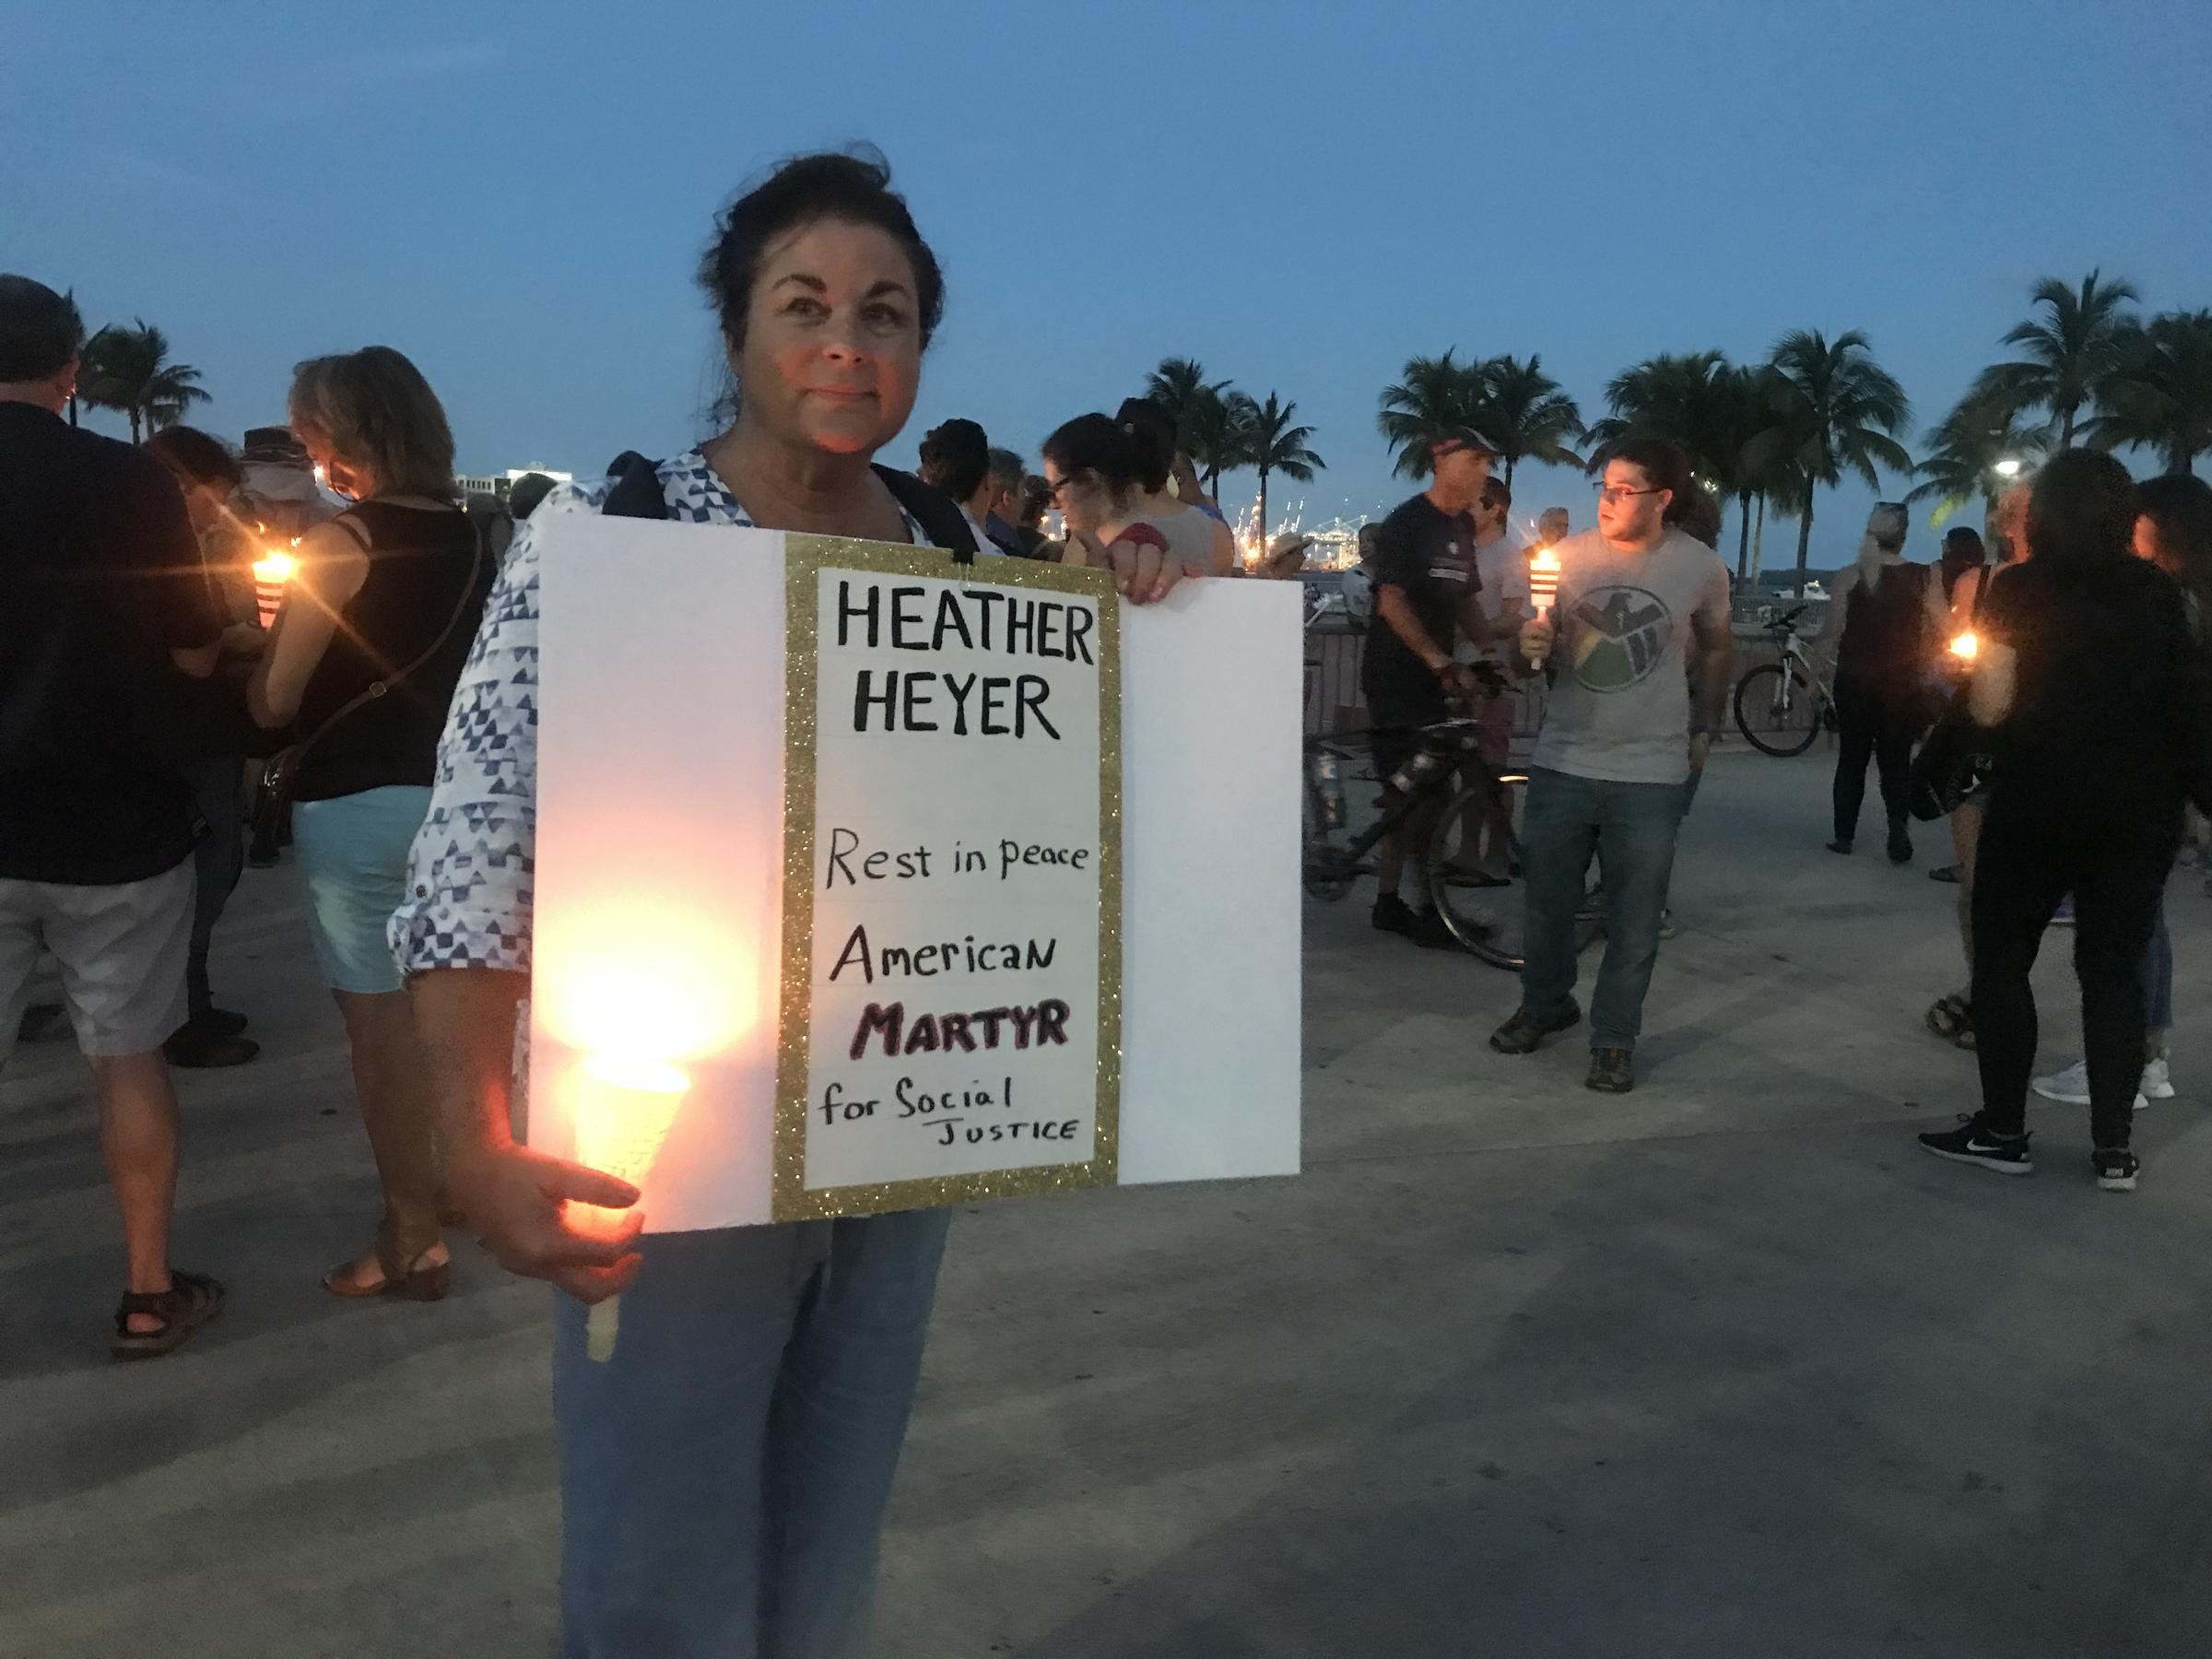 Mary Kay Gaffney Attended This Week S Peace Vigil In Miami S Bayfront Park Heather Heyer Was Killed When A Driver Plowed Through Counter Protesters At A